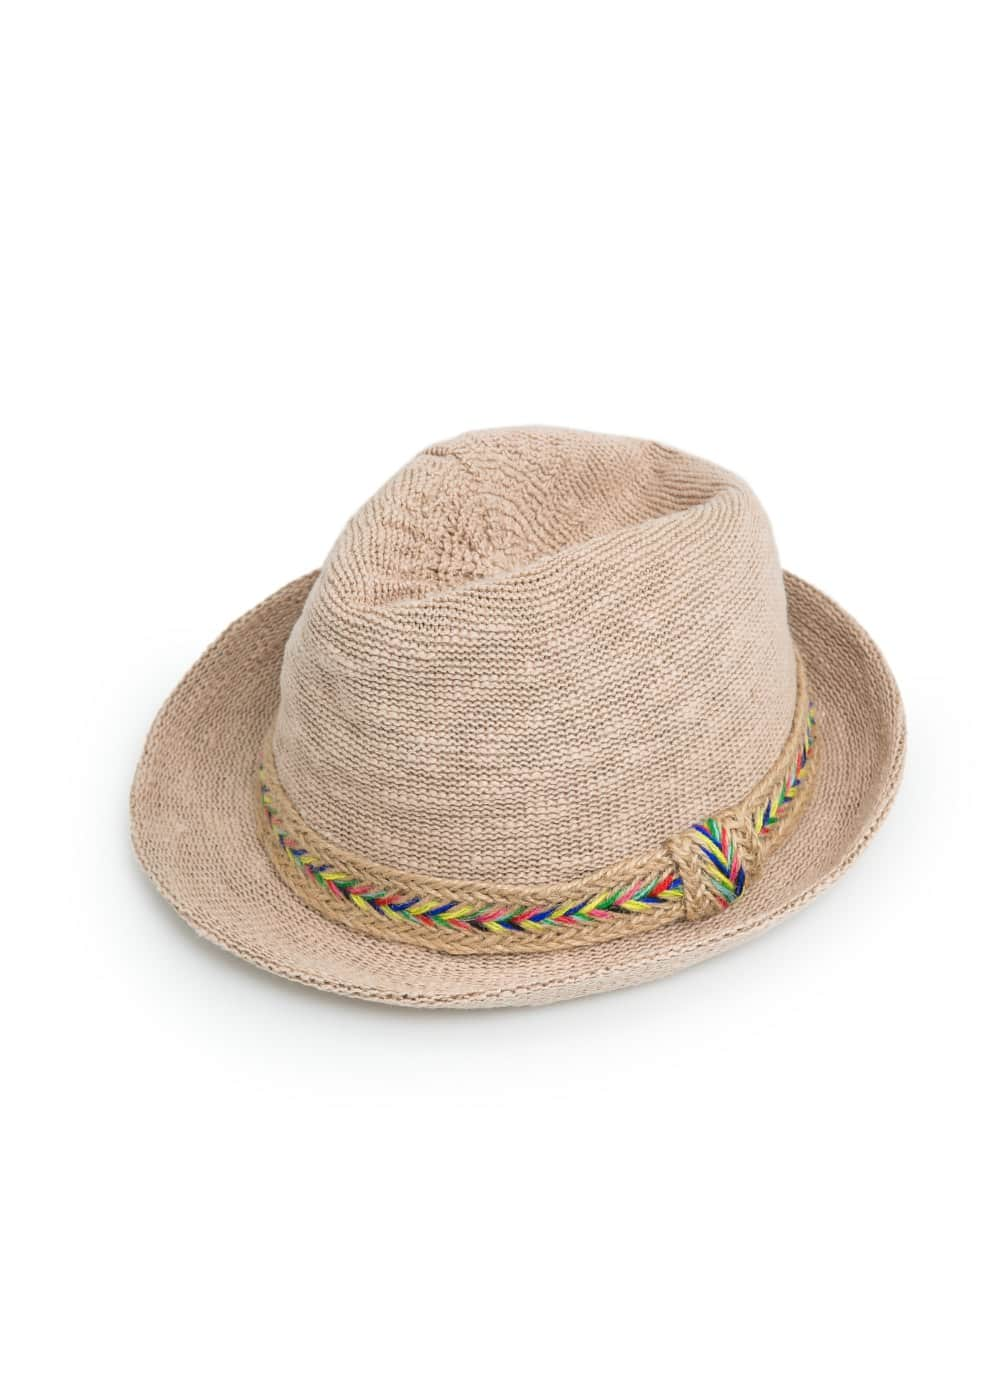 Ribbon fedora hat